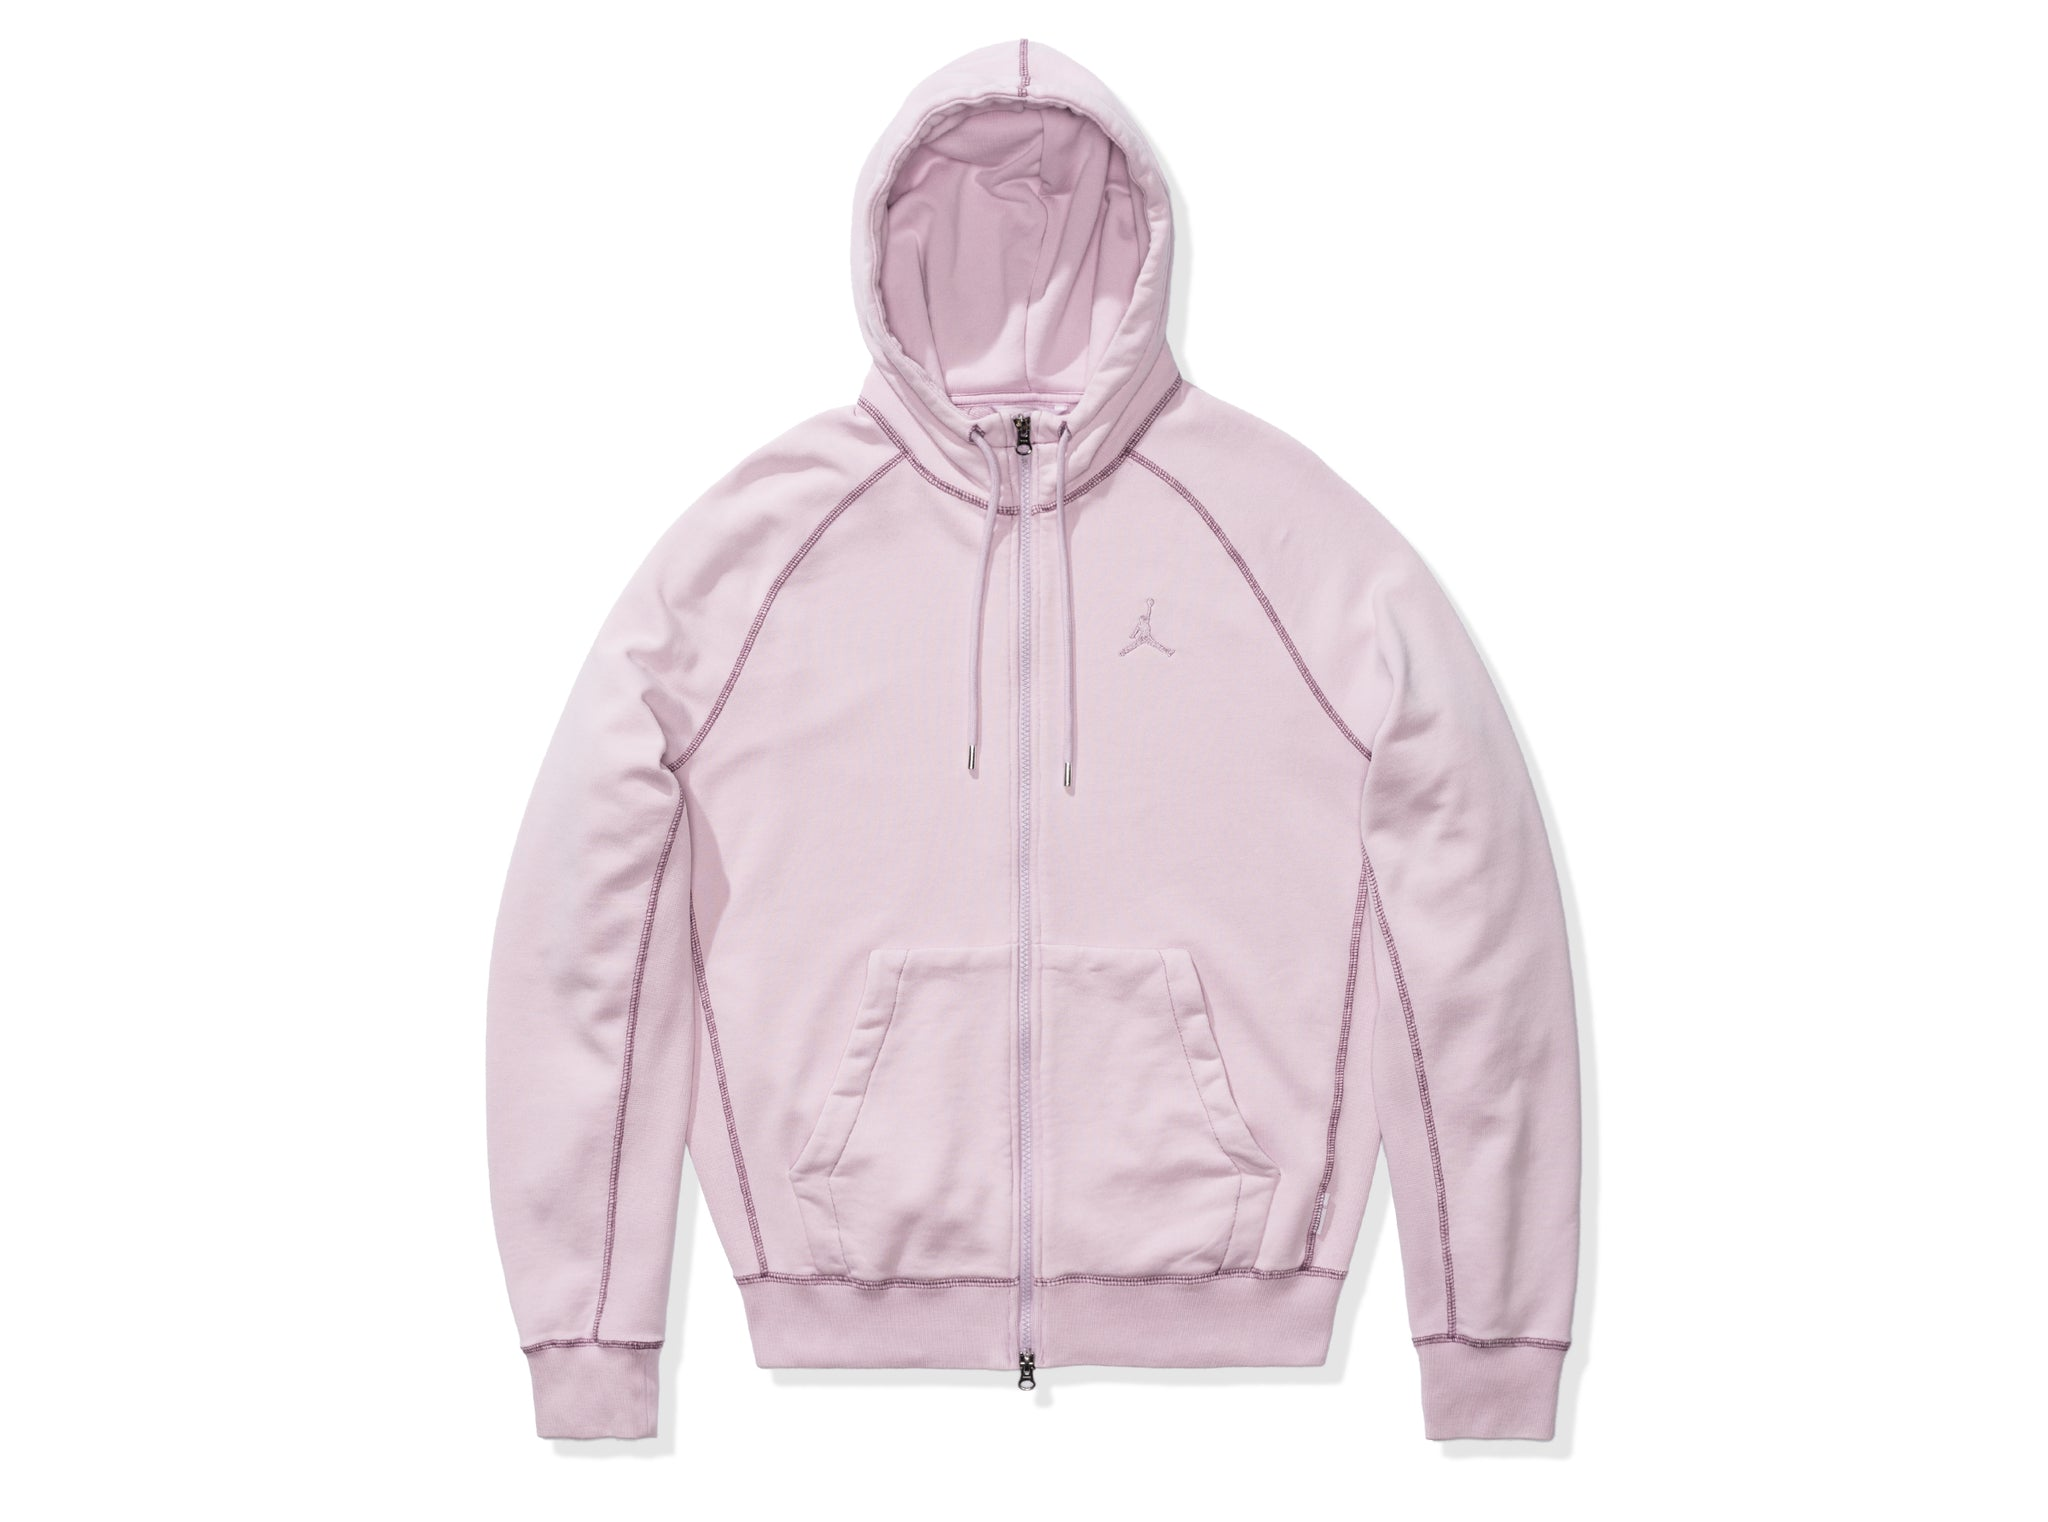 WINGS WASHED FLC FZ HOODIE - ICEDLILAC